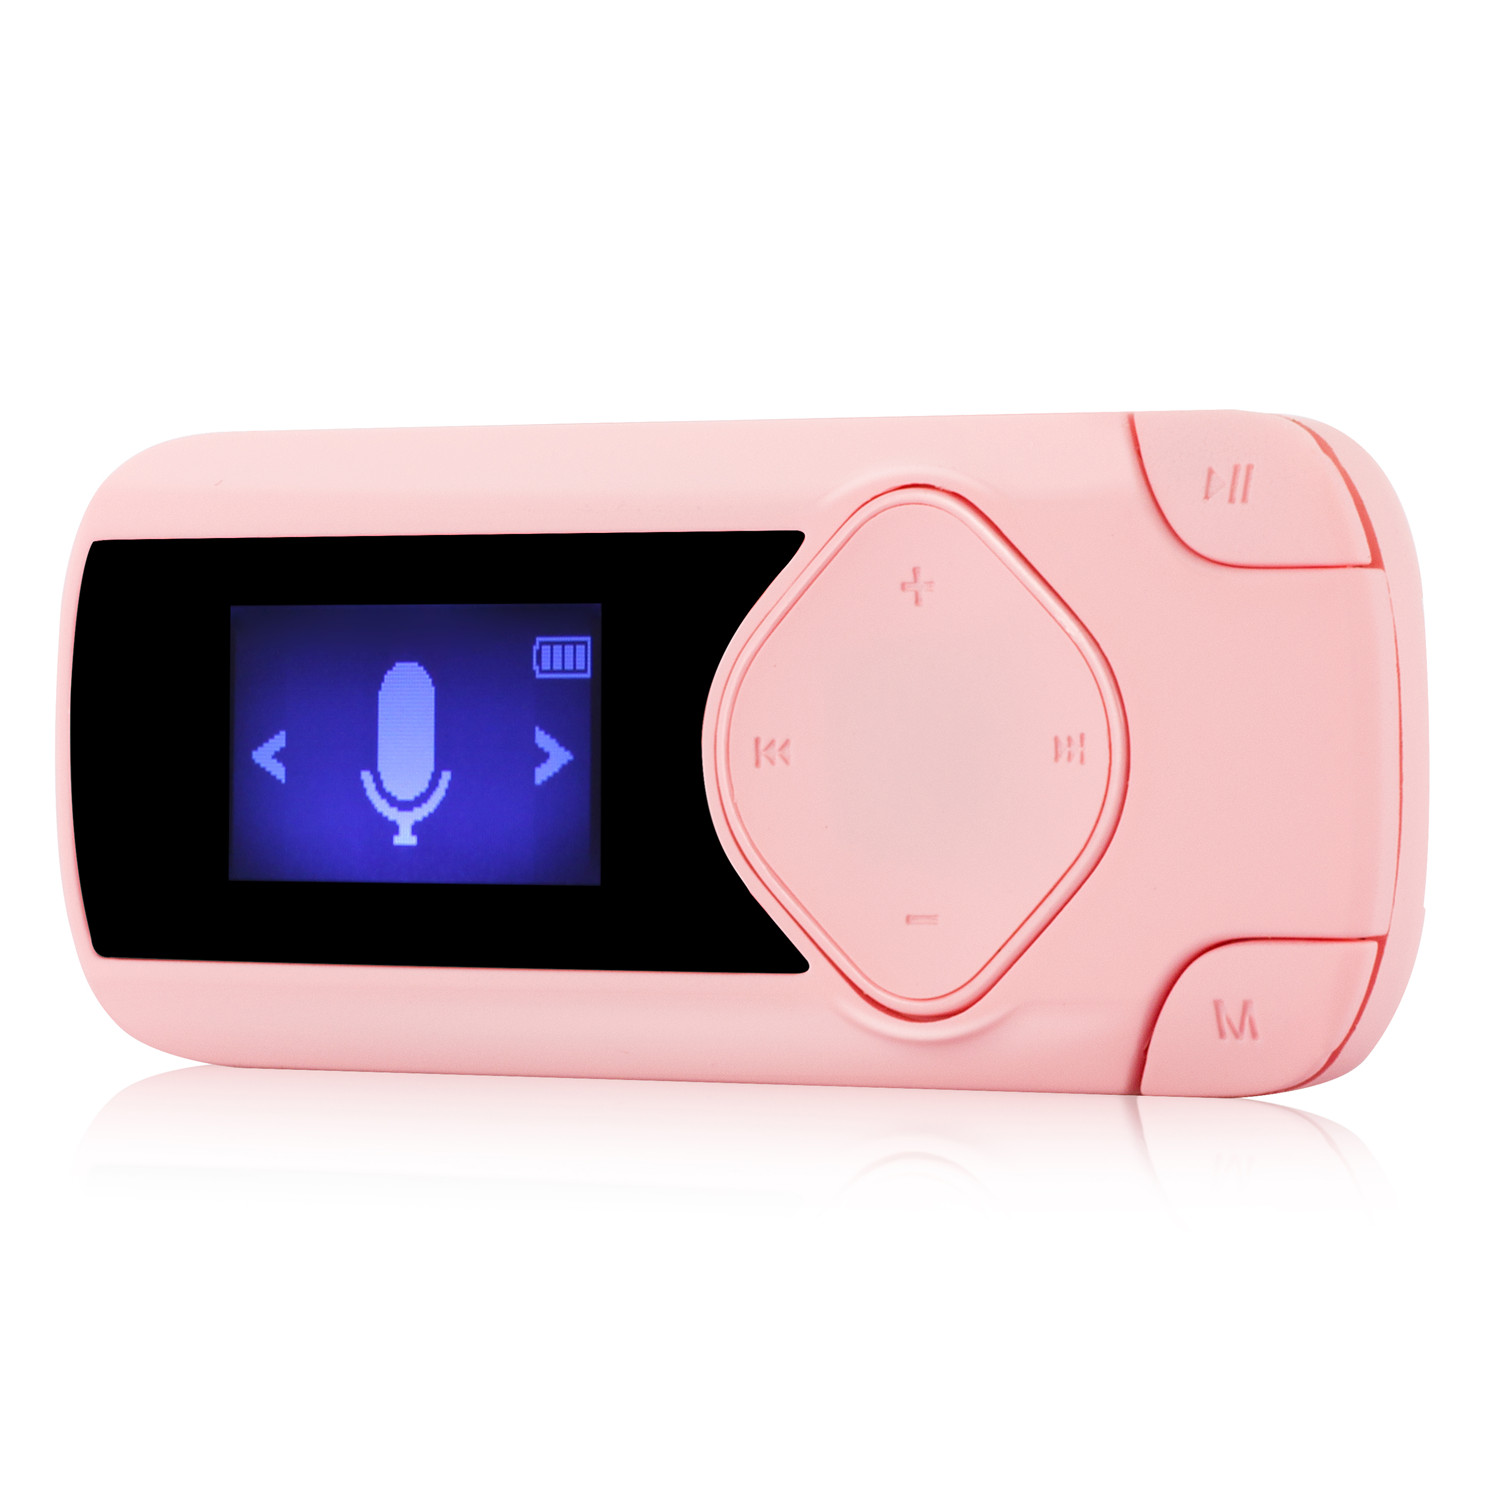 AGPtEK R2 8GB Clip MP3 Player Digital Music Player for Jogging Running Gym(Supports up to 64GB), Pink